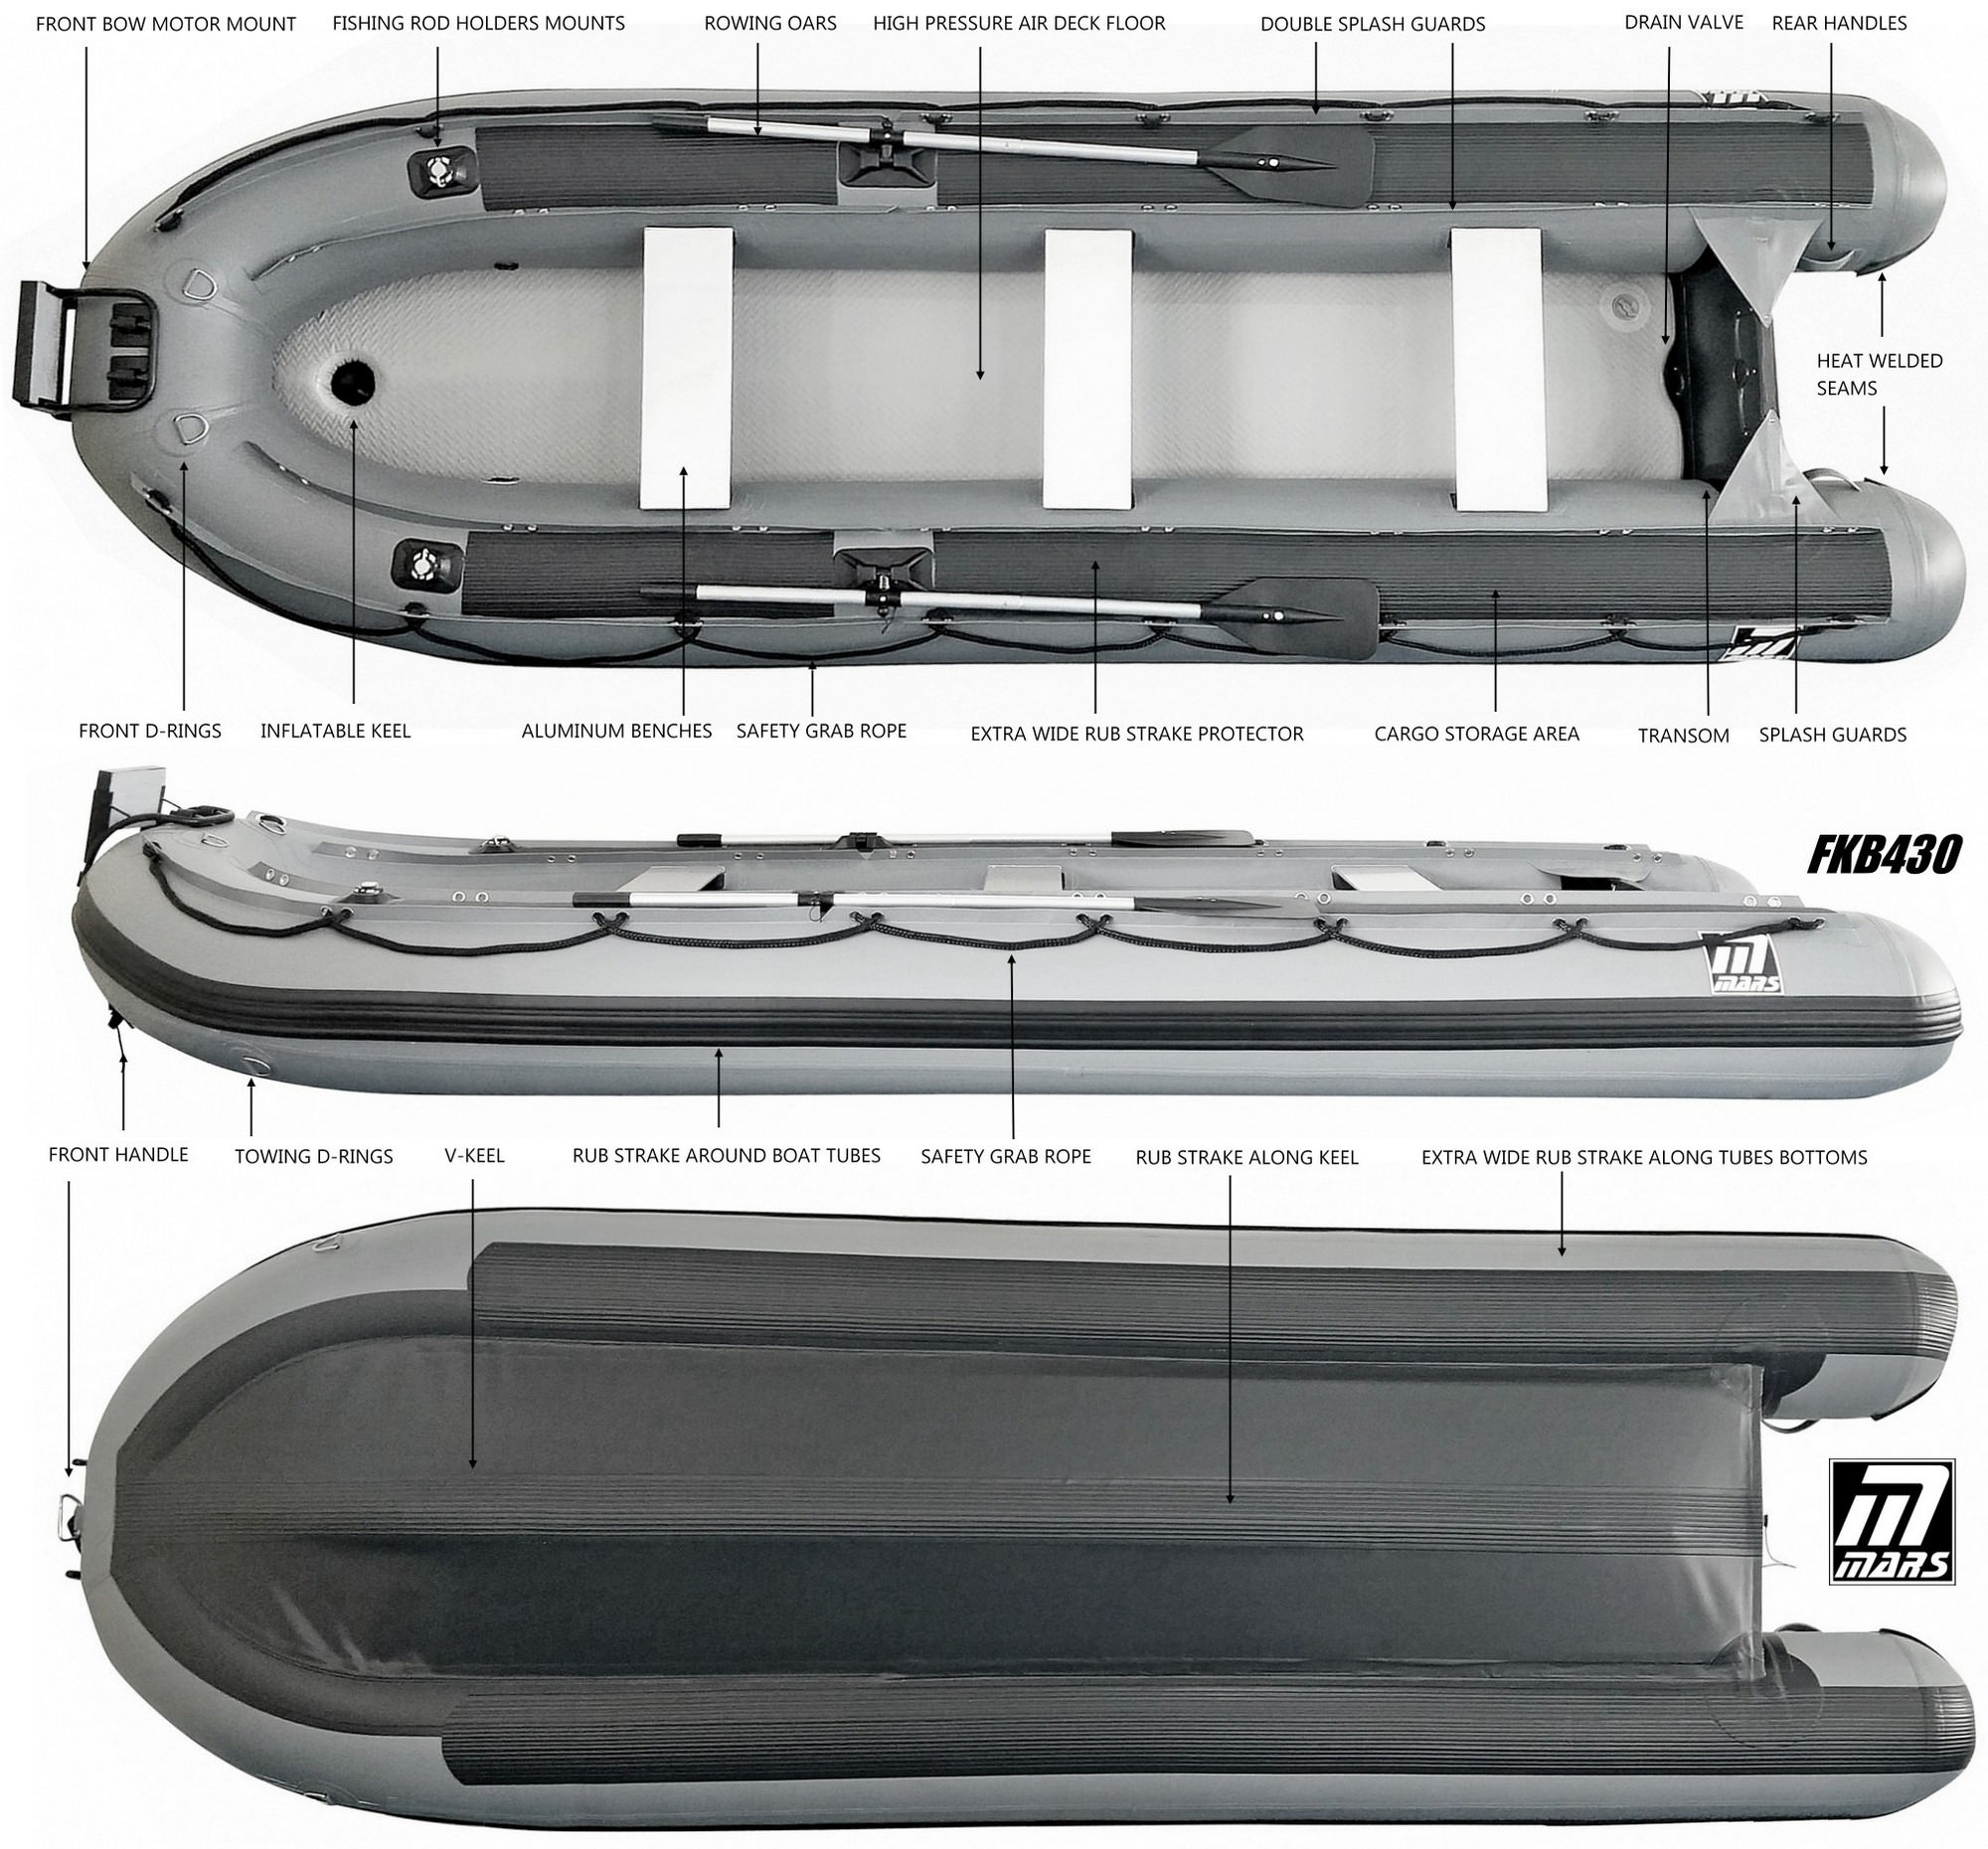 Mars FKB430 fishing KaBoats specifications